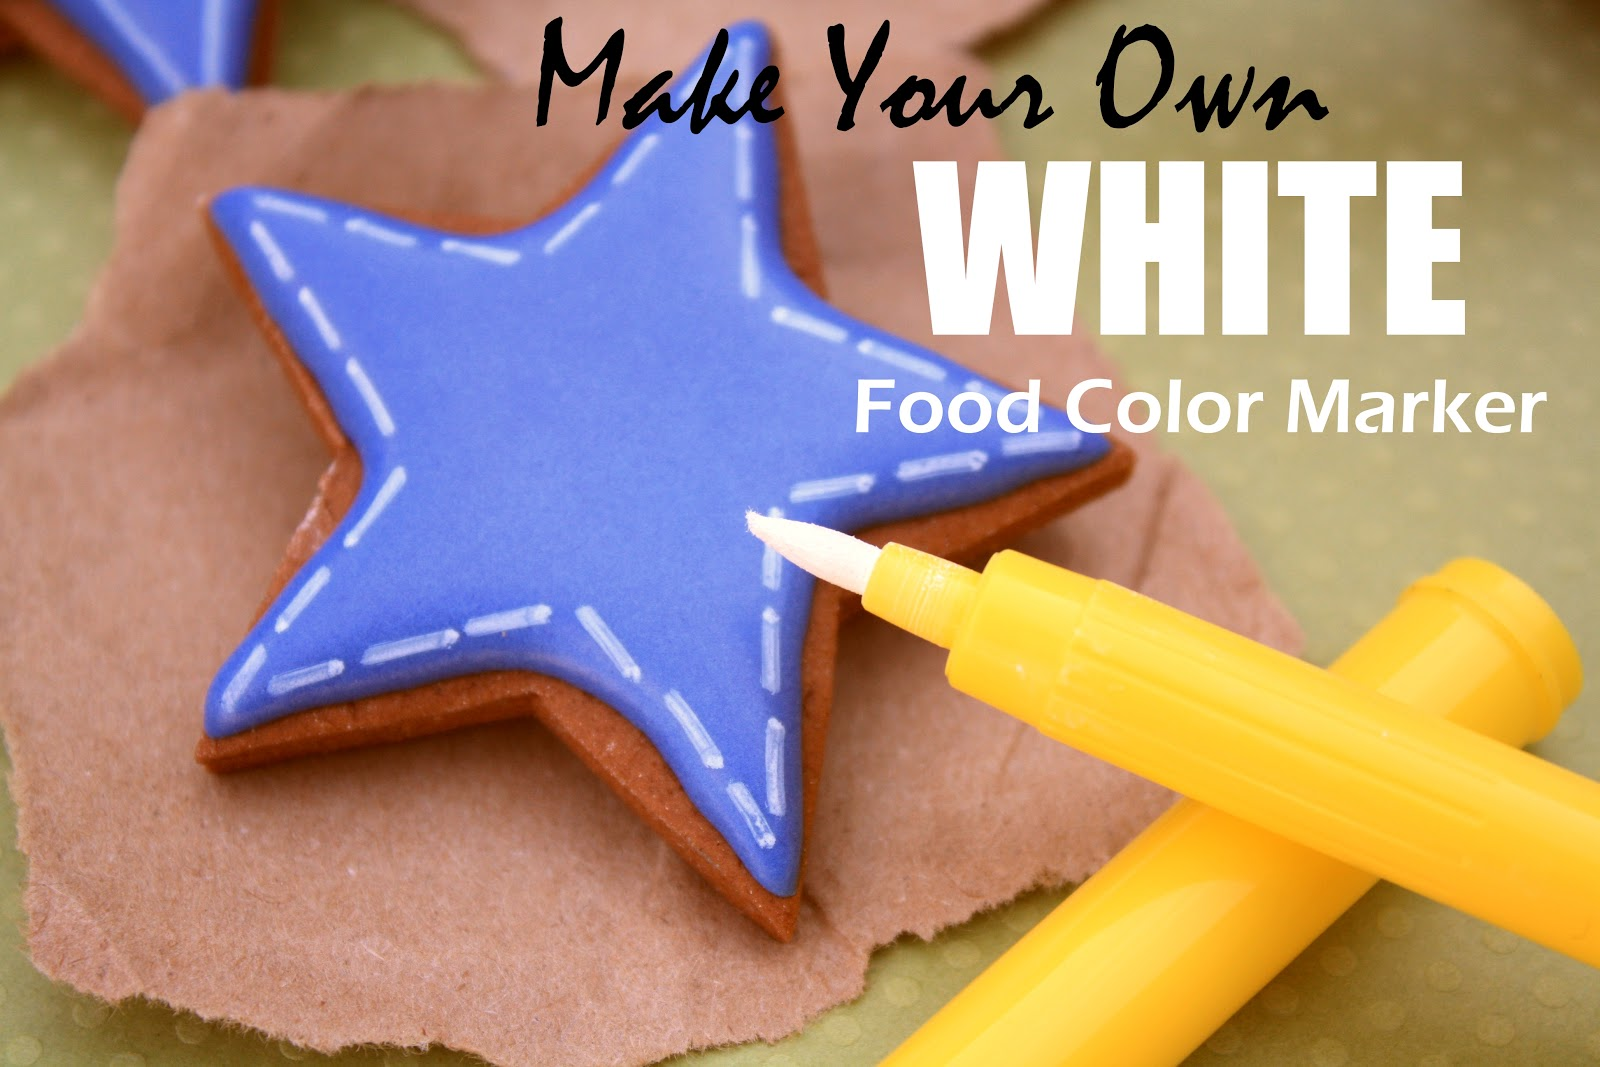 Make Your Own WHITE Food Color Marker | LilaLoa: Make Your Own ...